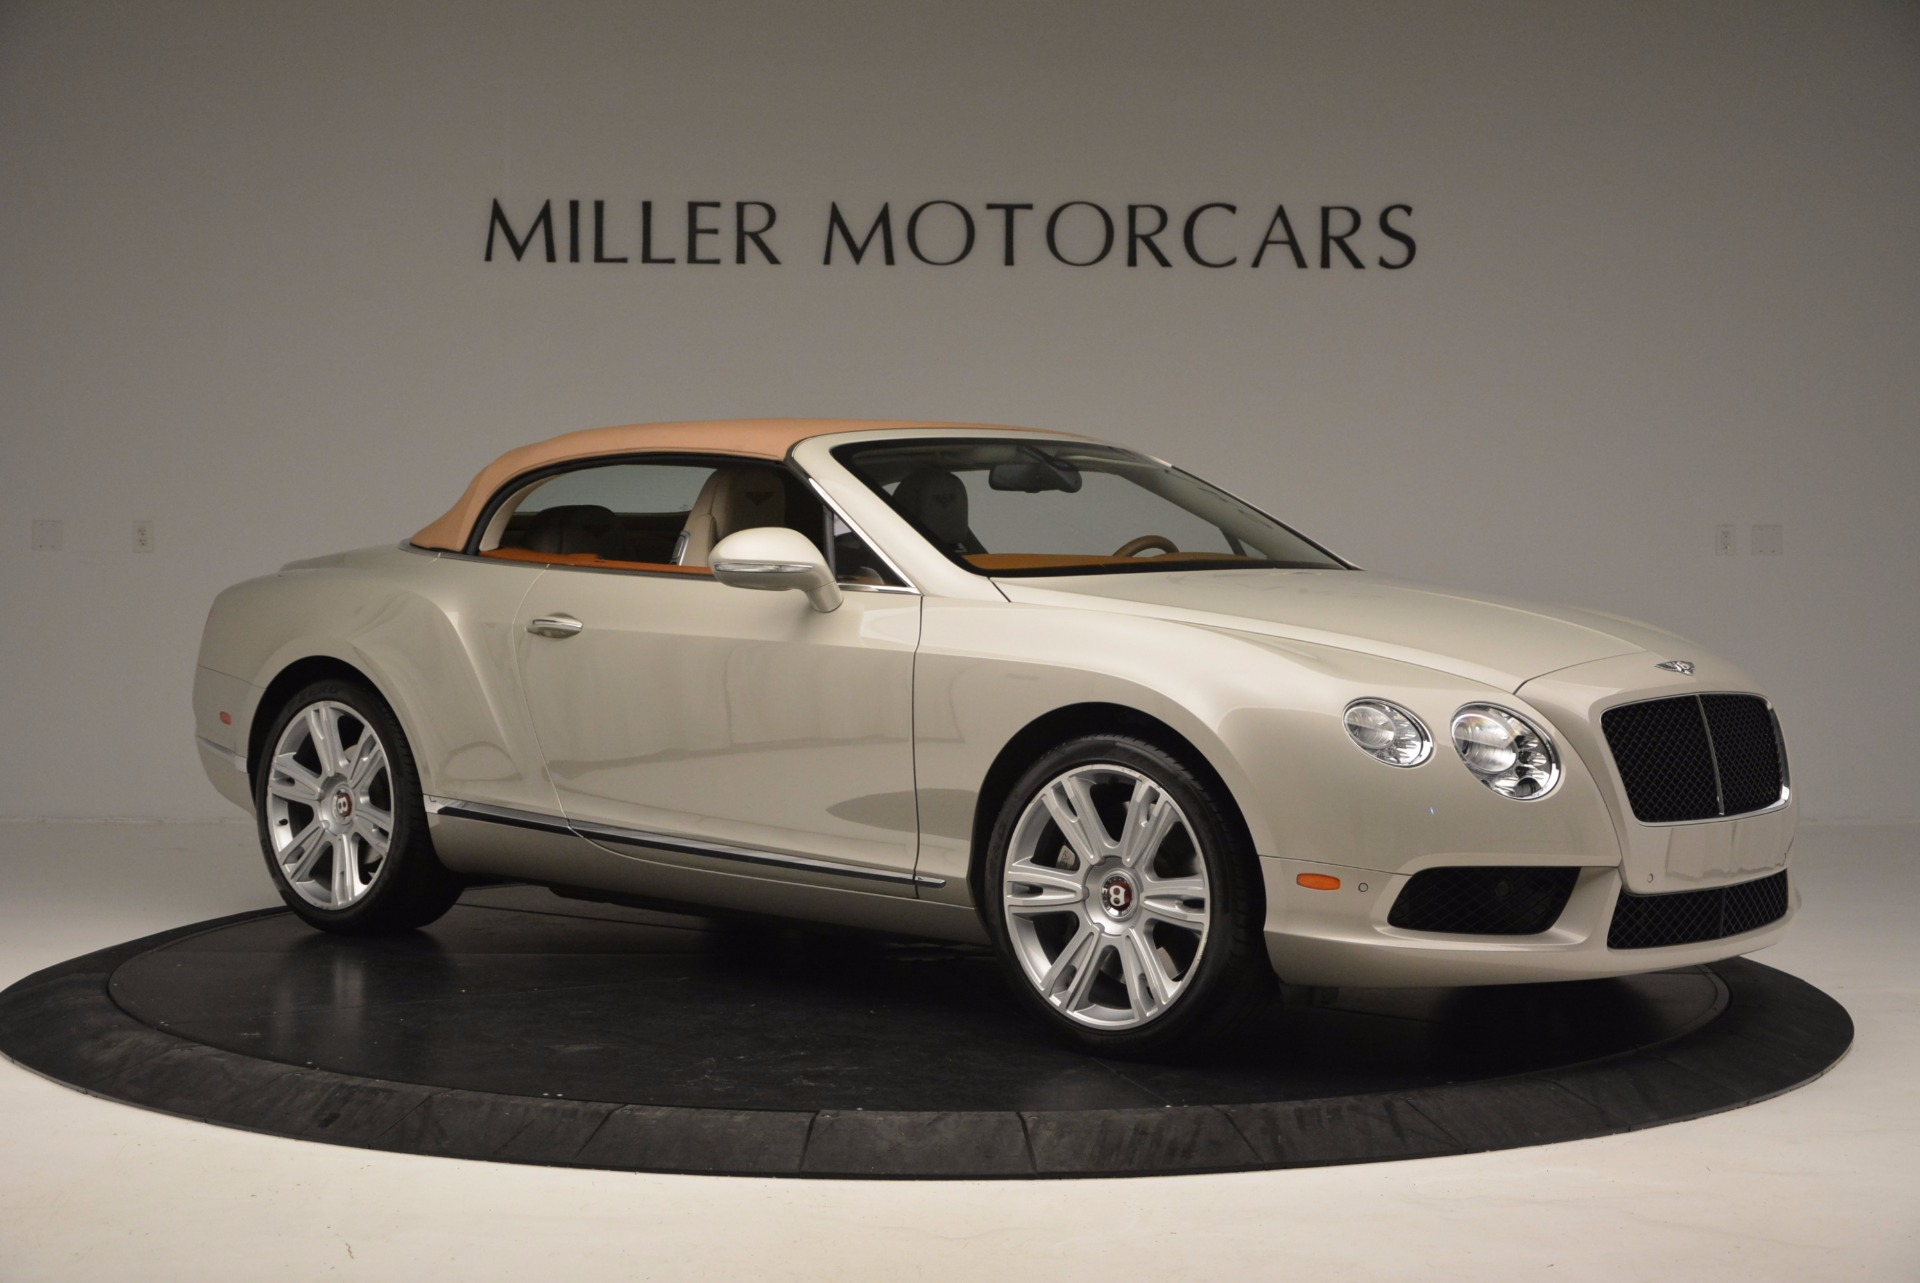 Used 2013 Bentley Continental GTC V8  For Sale In Greenwich, CT. Alfa Romeo of Greenwich, 7108 675_p23